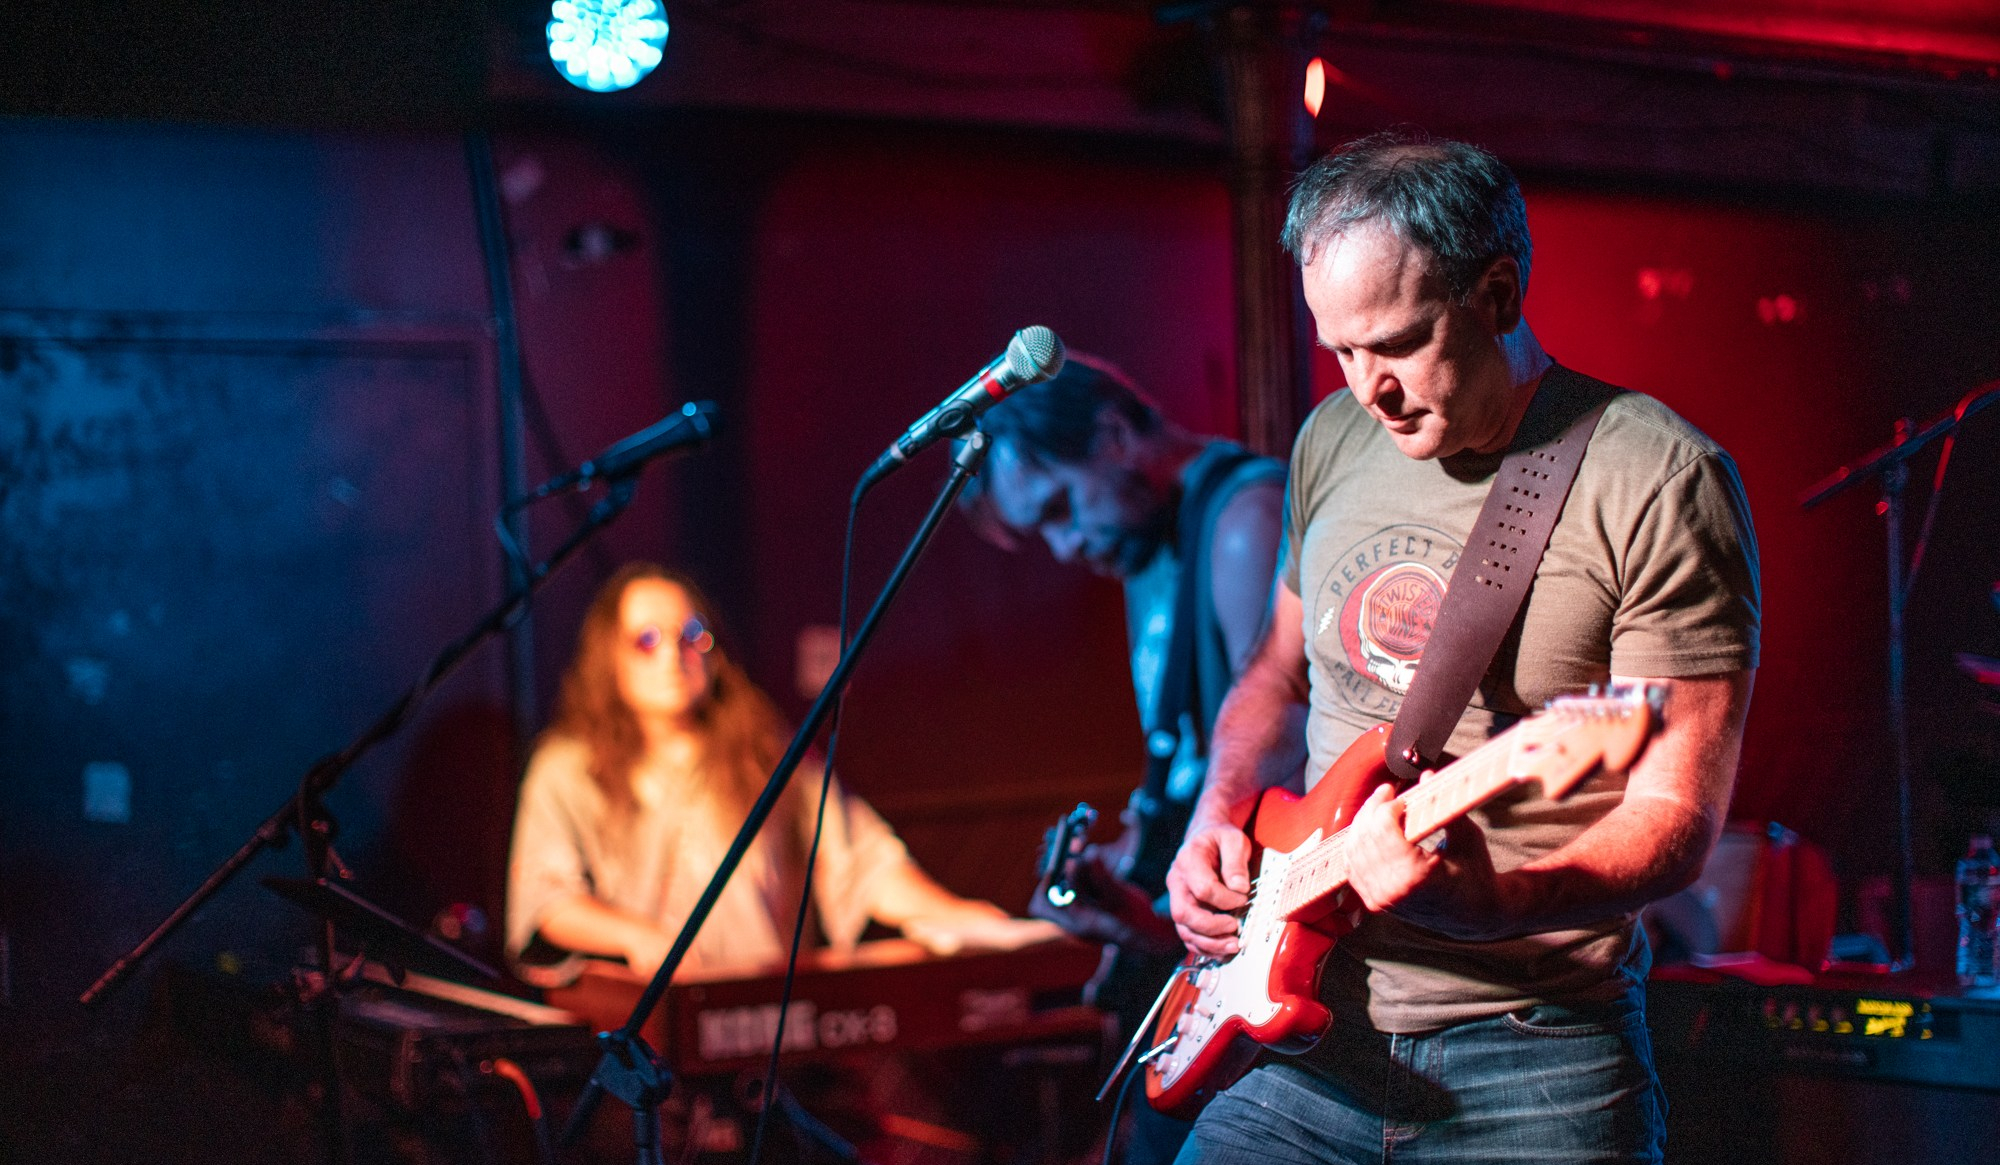 GALLERY: Raisinhead with Lo Faber and Tom Pirozzi at the Parish Public House